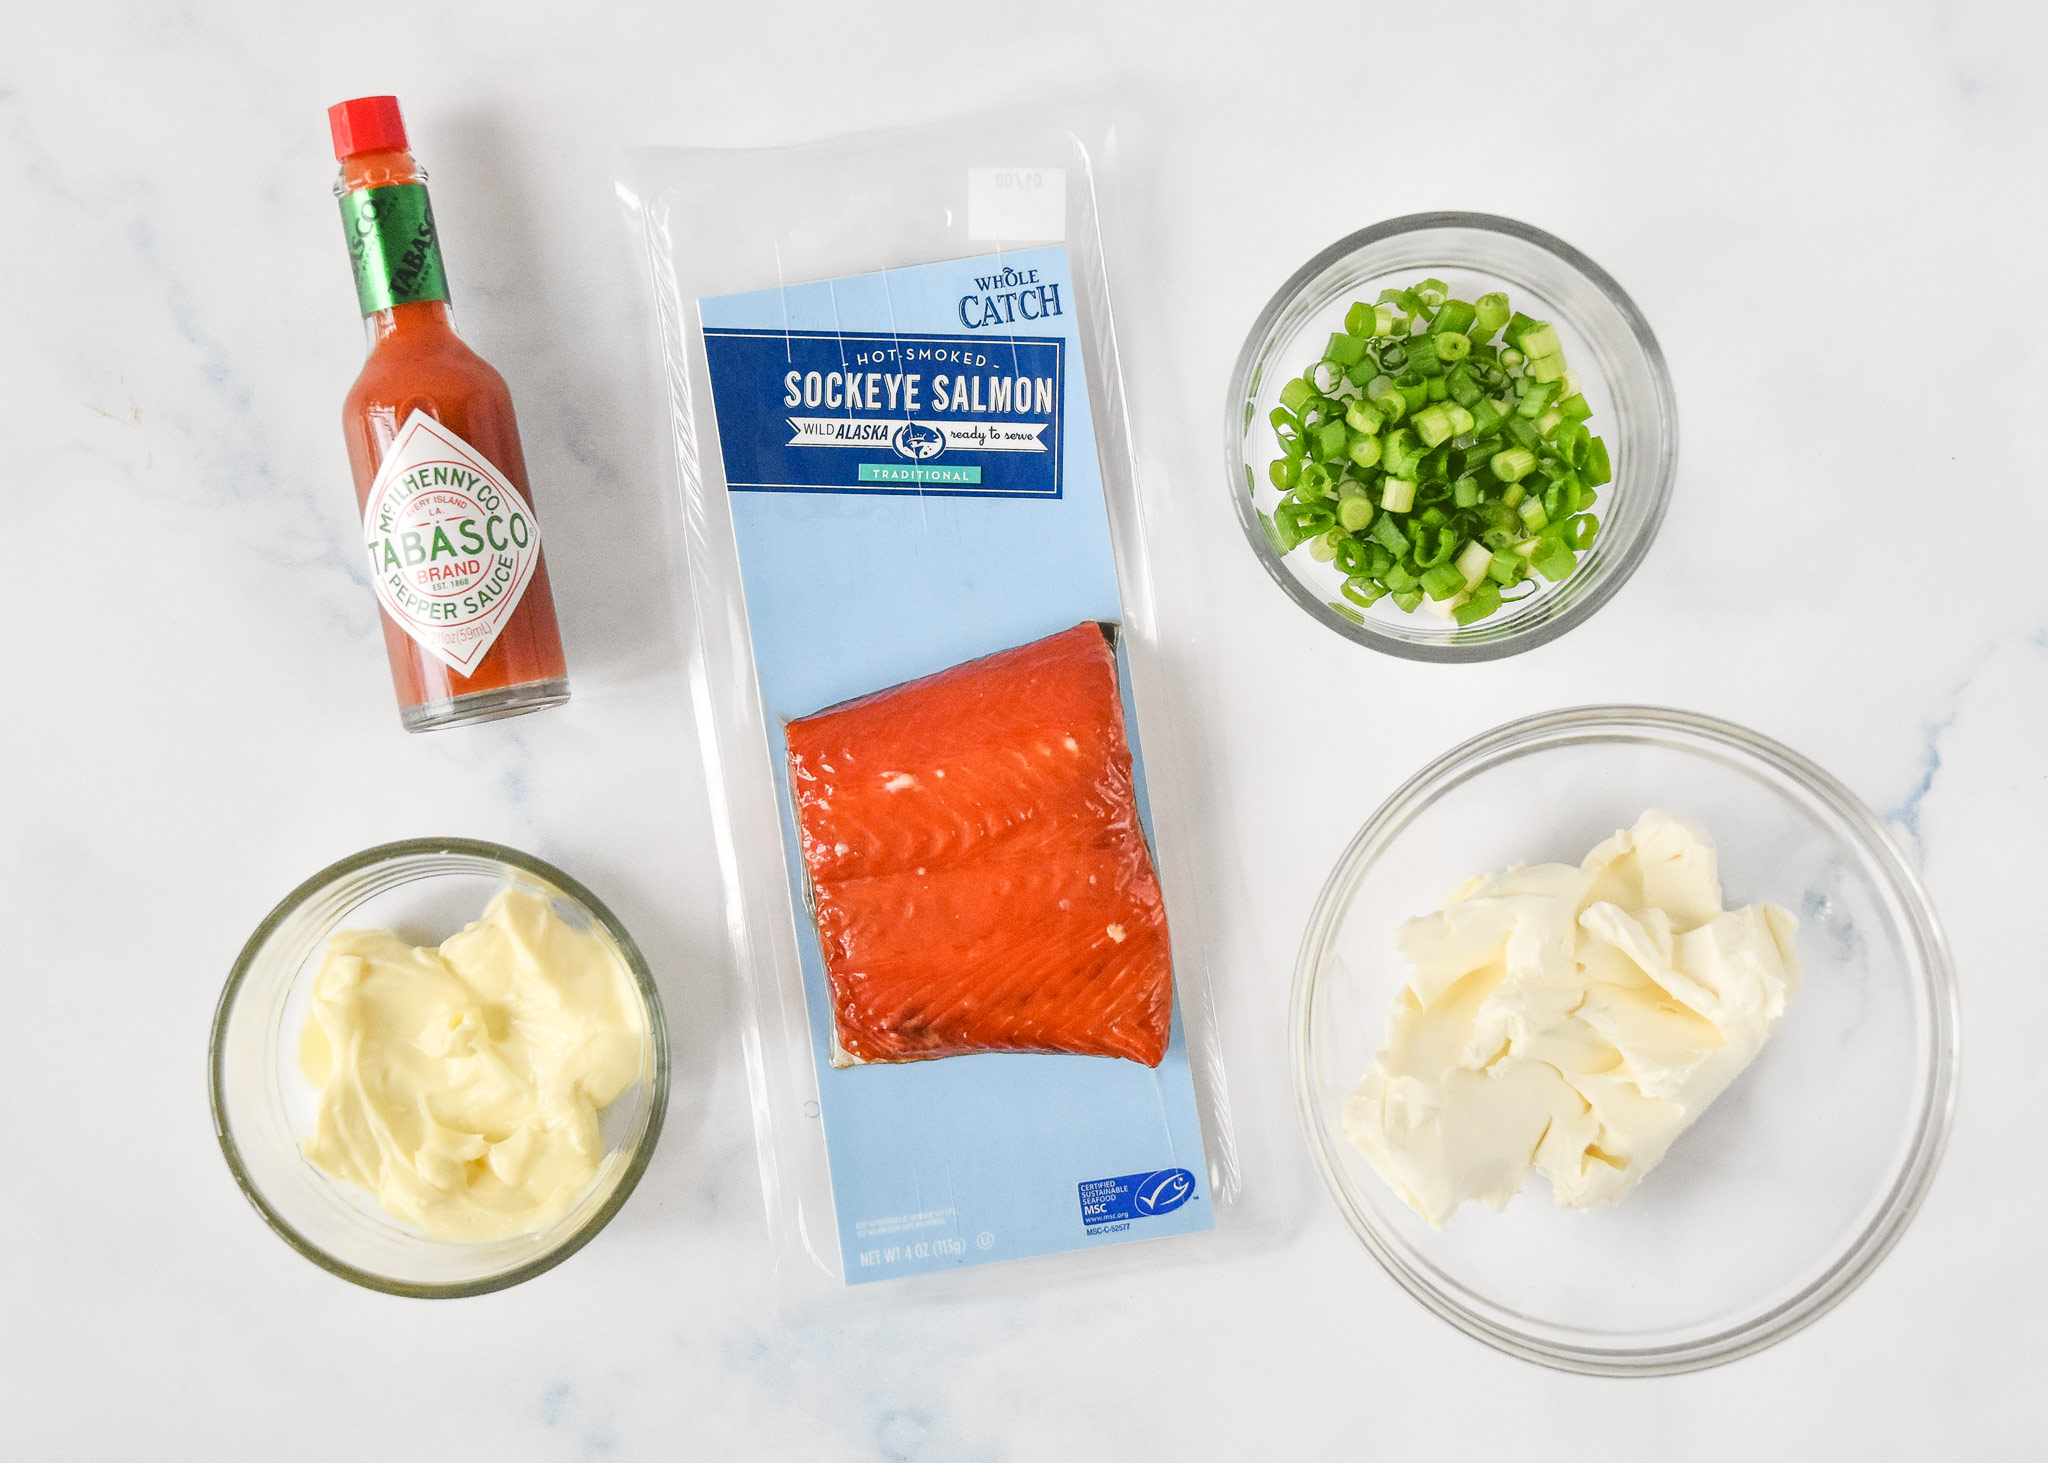 ingredients for the smoked salmon dip.